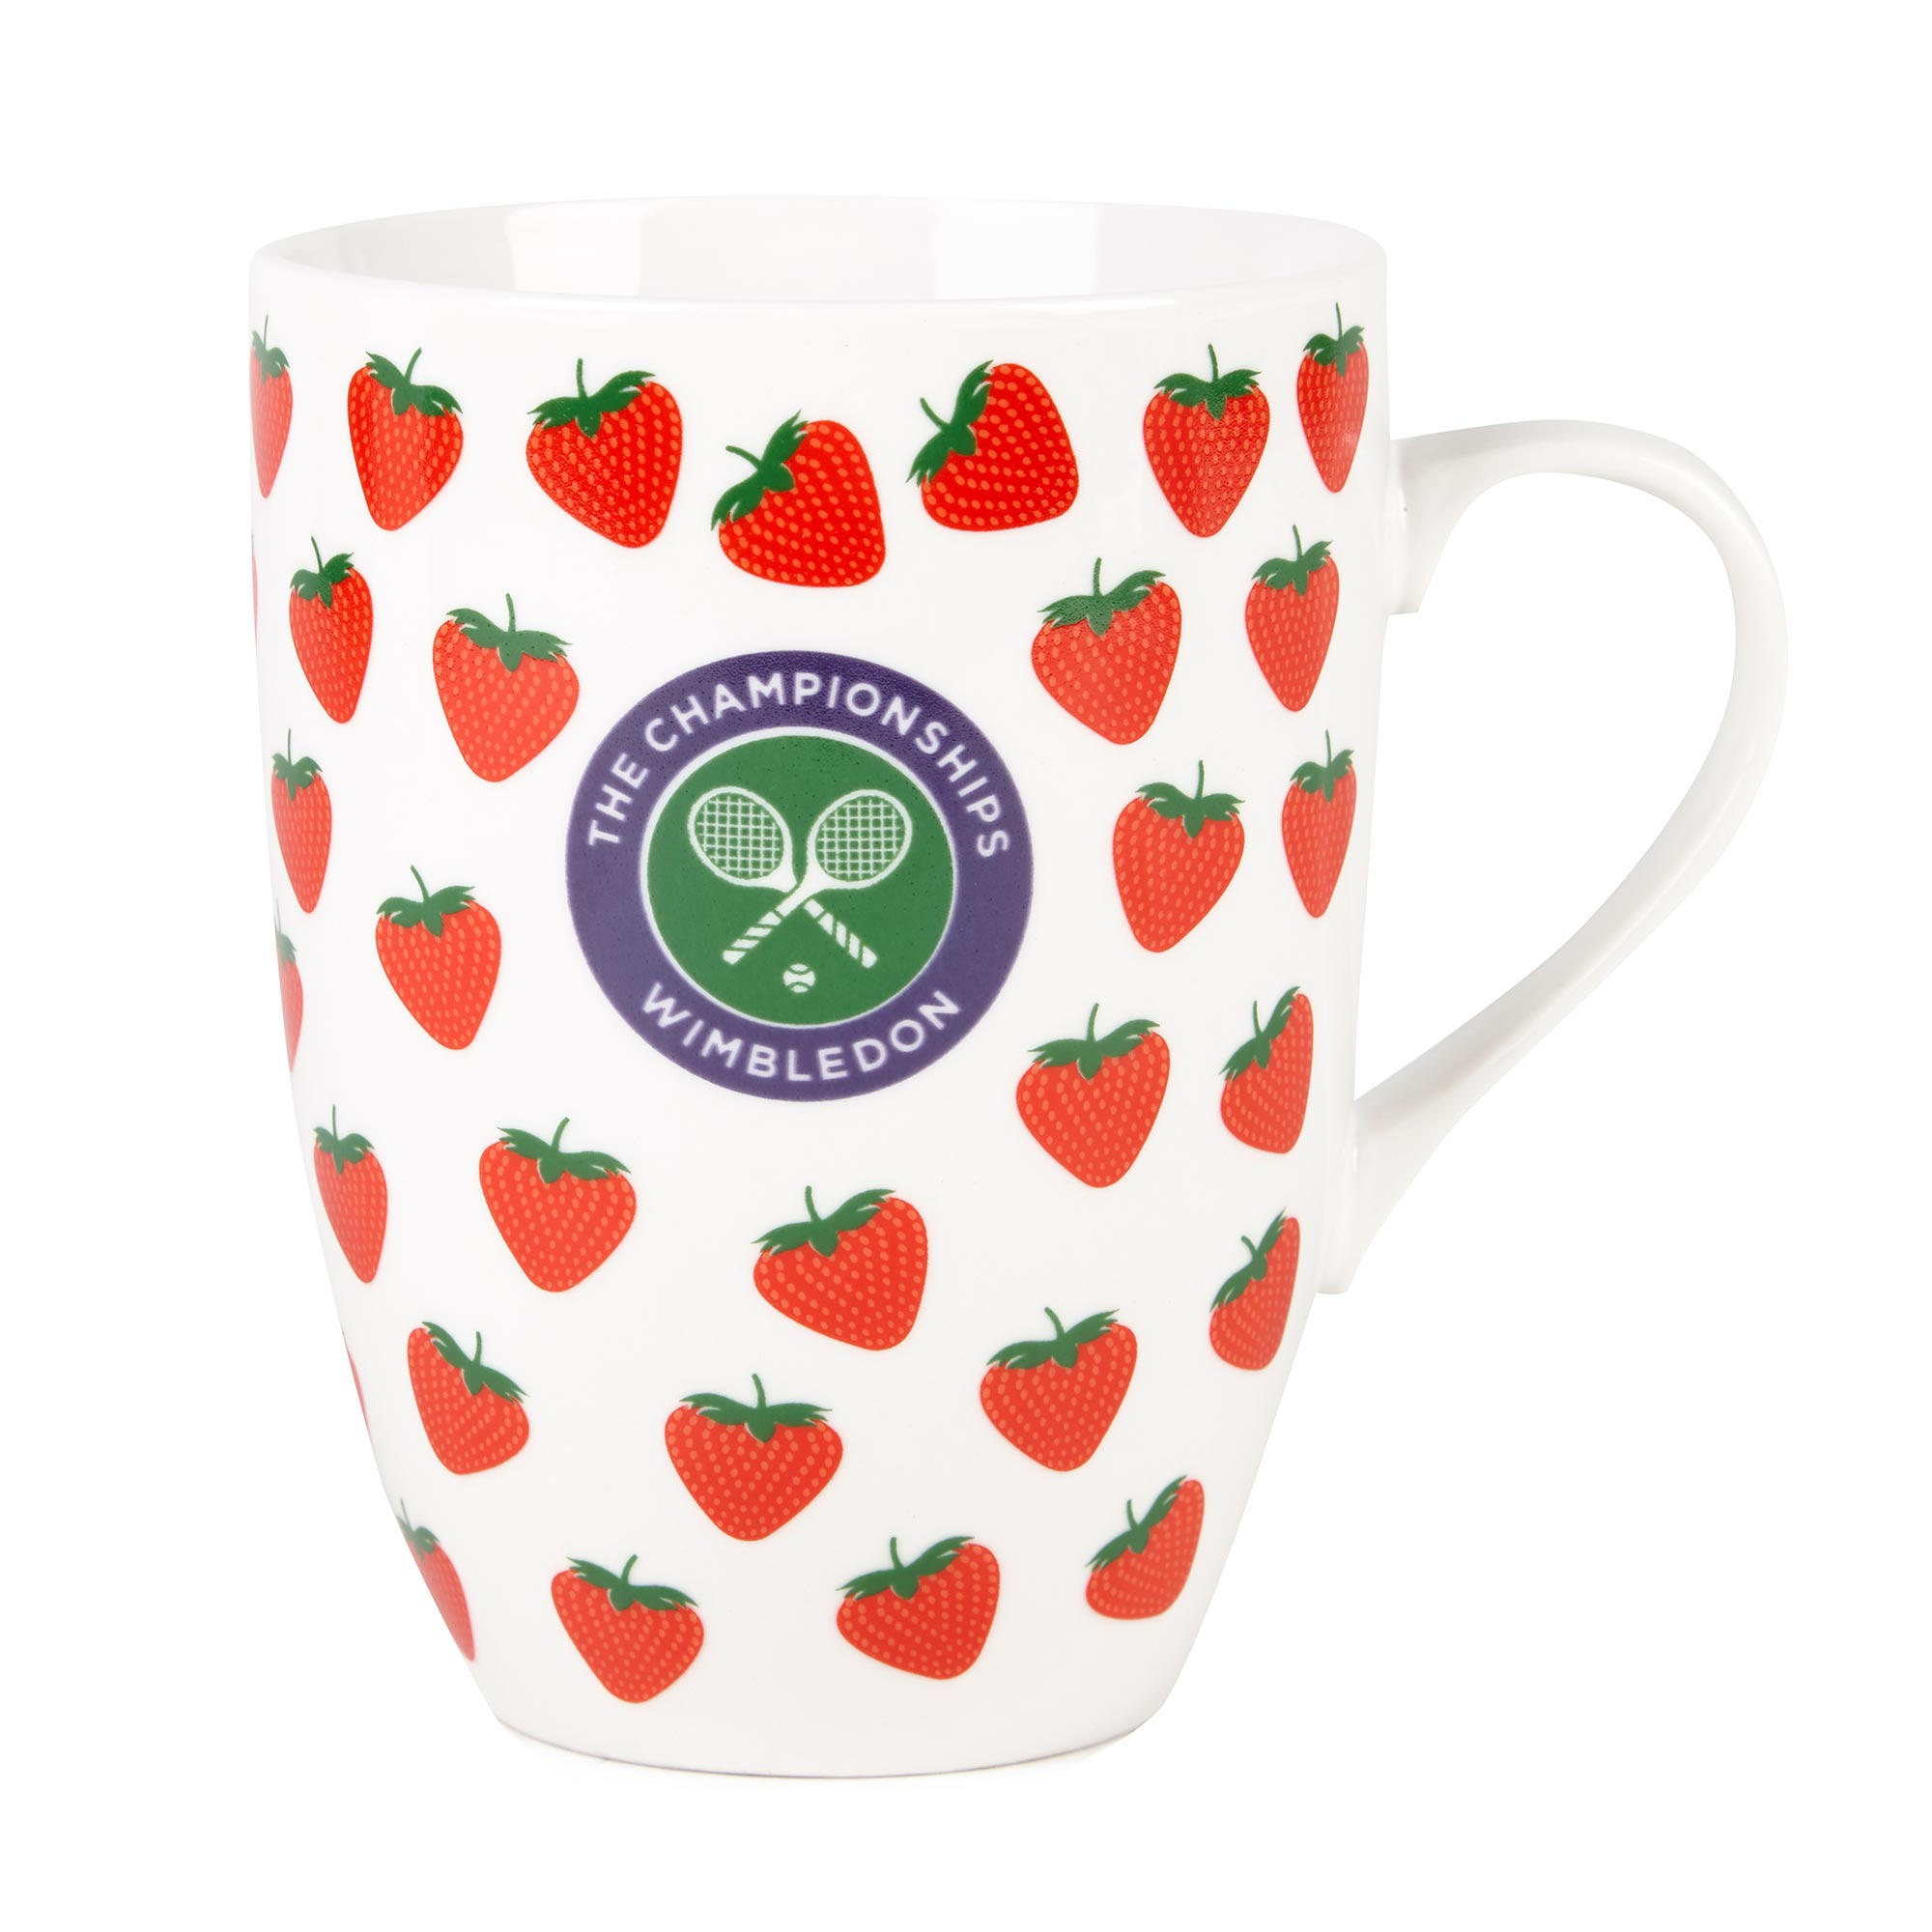 Wimbledon Strawberry Mug - New